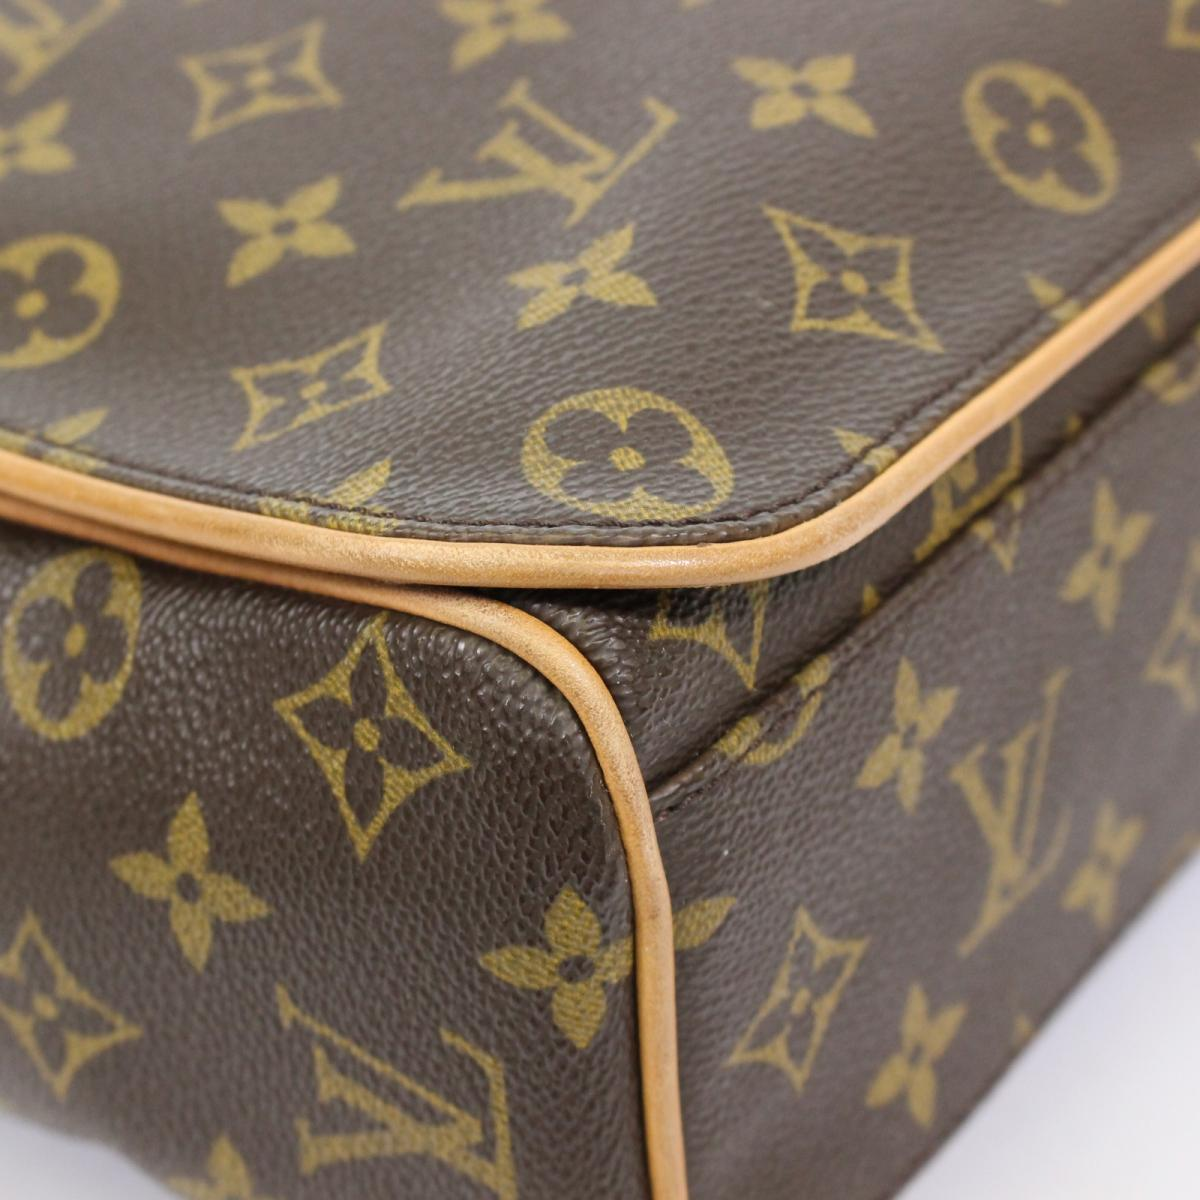 b81c40869b53 (Free shipping) Auth LOUIS VUITTON Abbesses Messenger Crossbody Shoulder  Bag M45257 Monogram LV